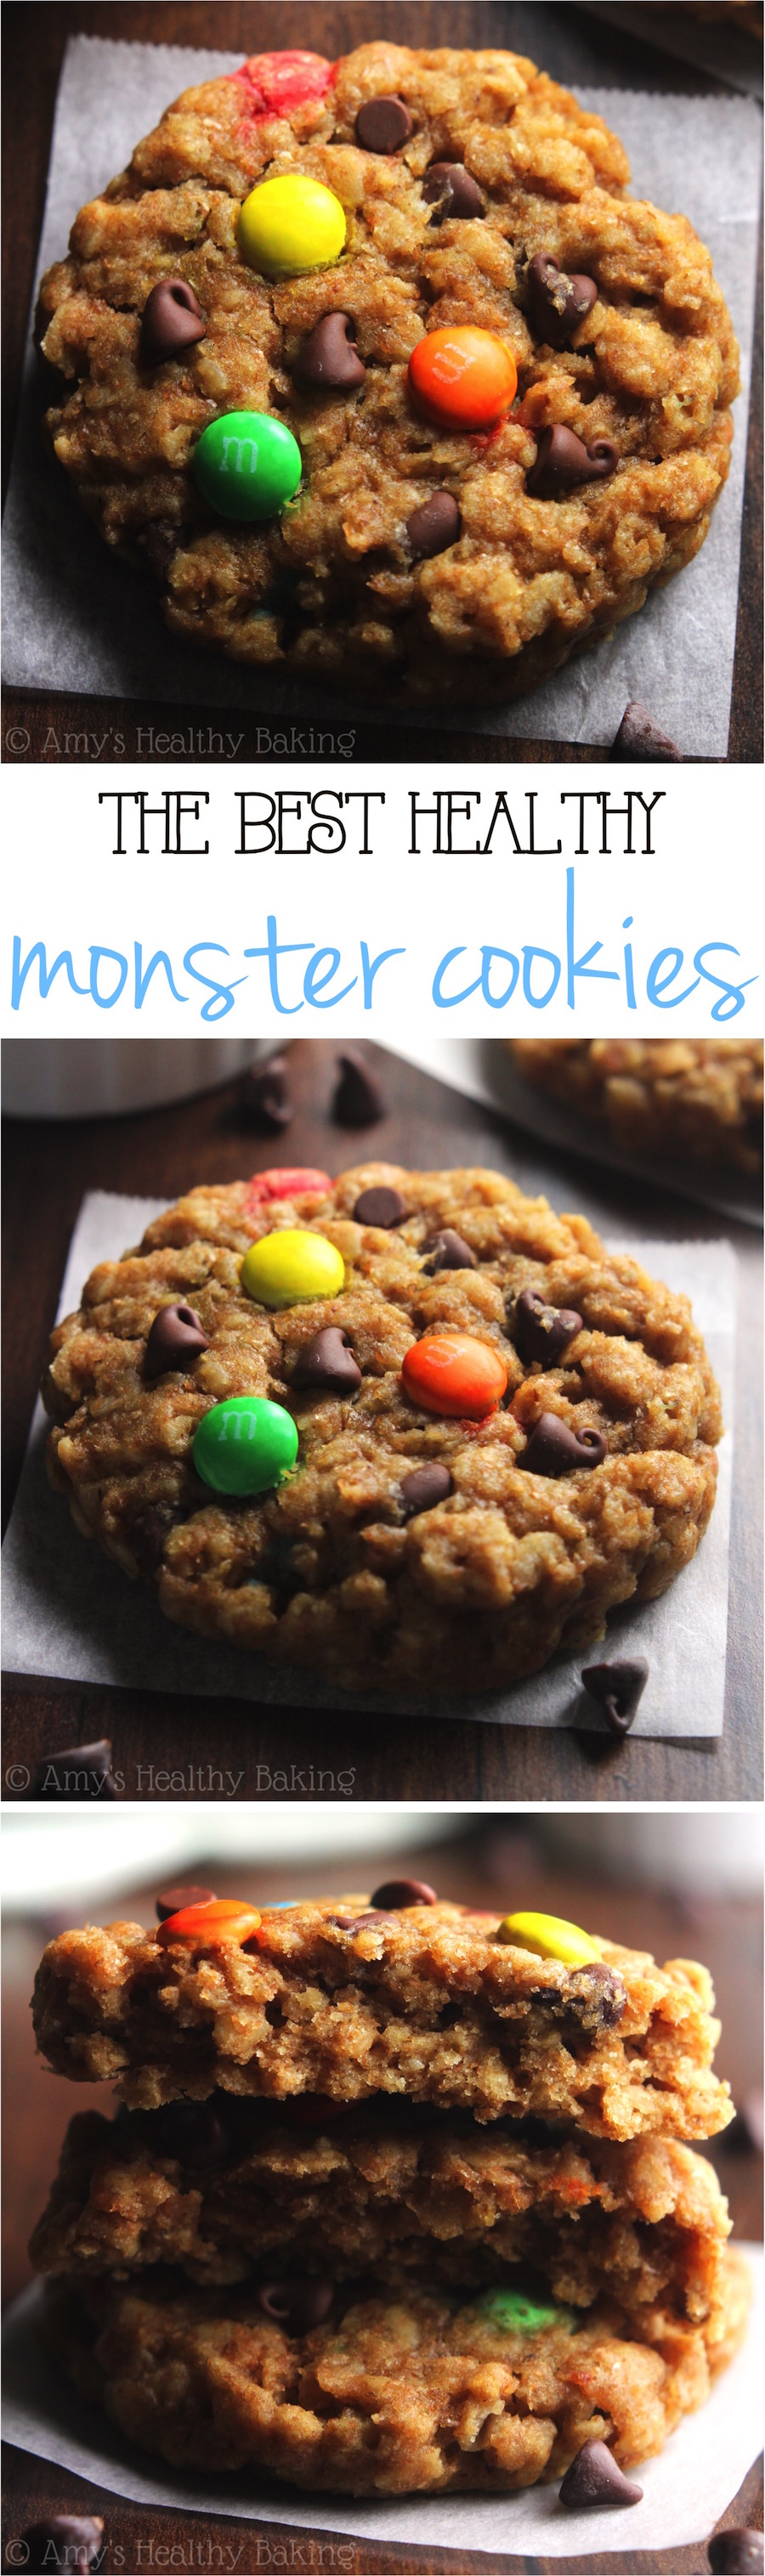 Healthy Classic Monster Cookies -- peanut butter oatmeal with LOTS of chocolate! These skinny cookies don't taste healthy at all! You'll never need another monster cookie recipe again!